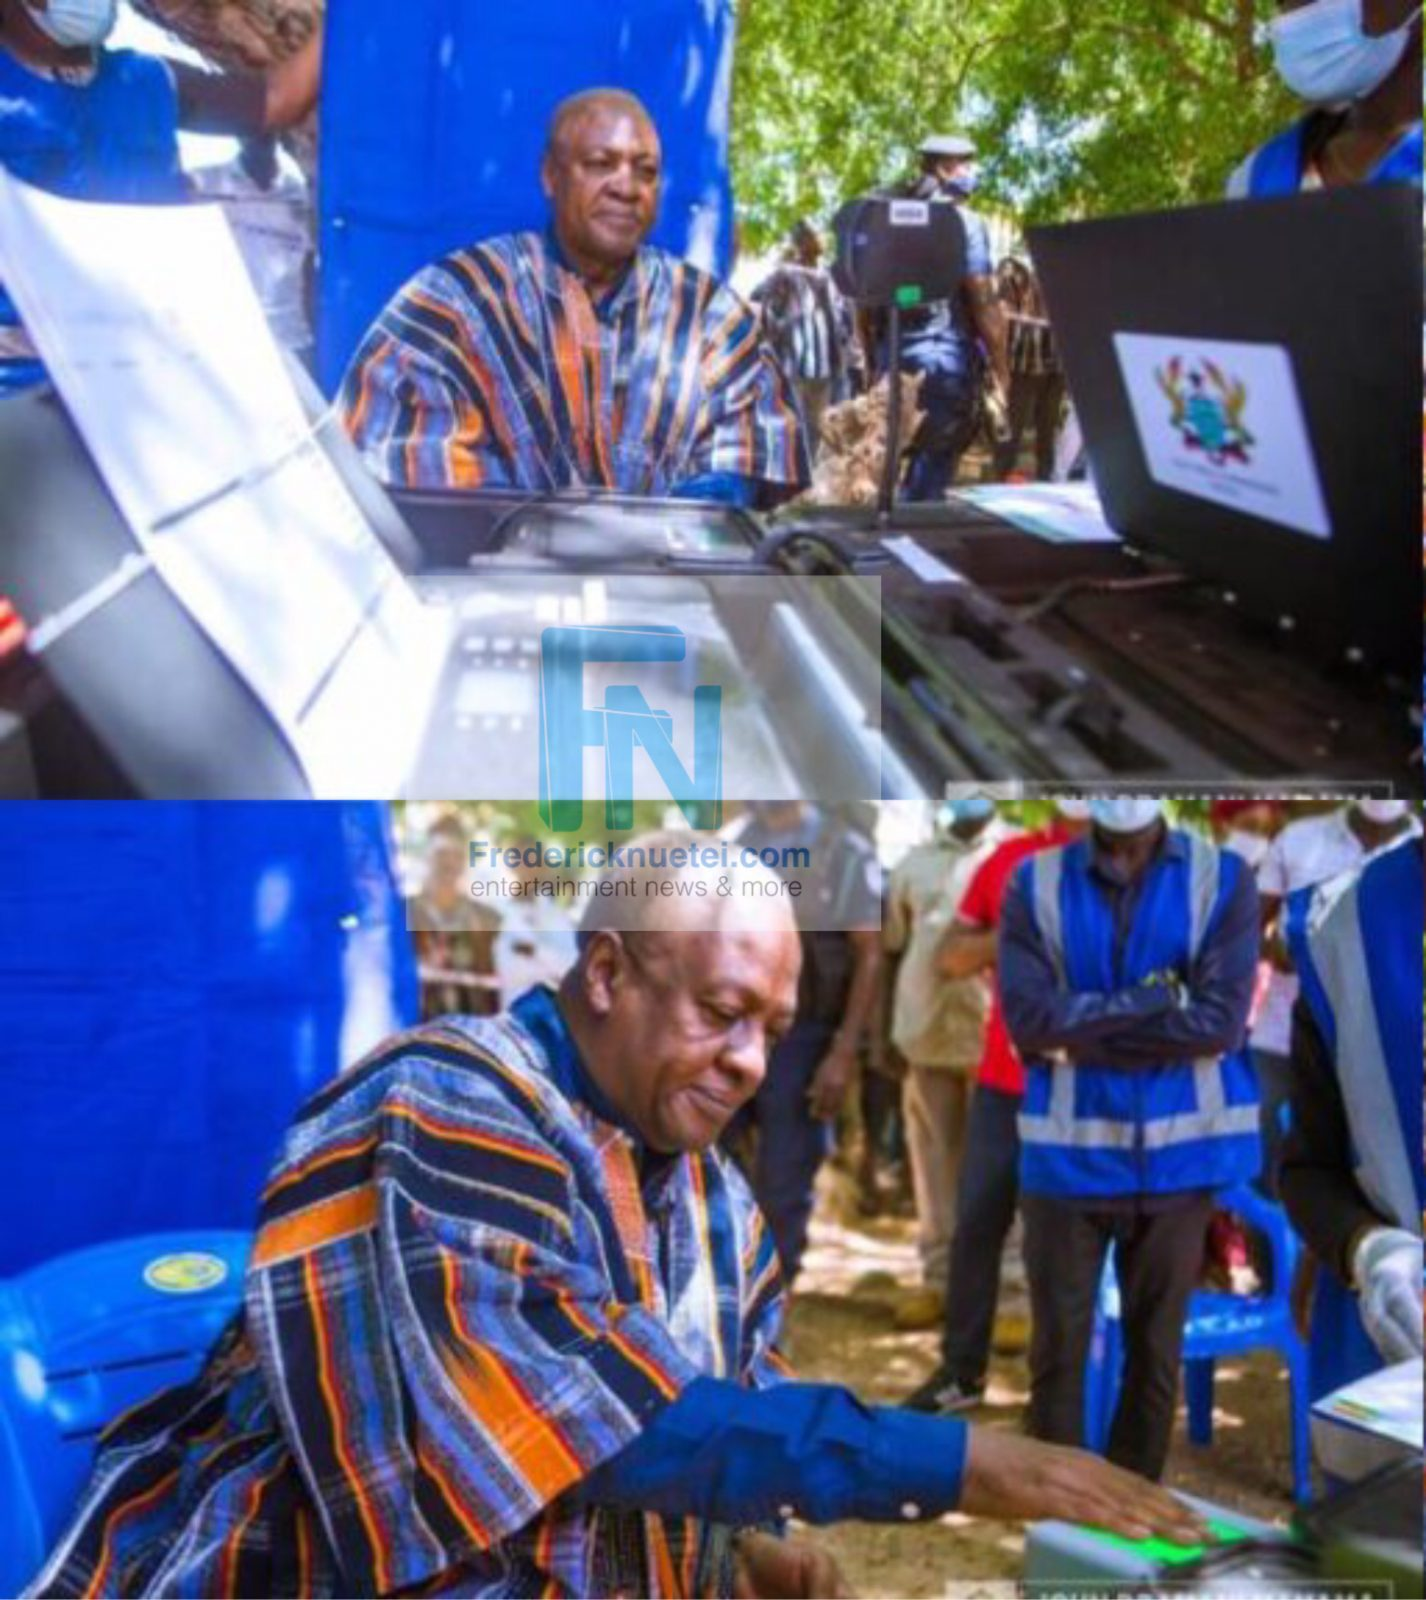 John Dramani Mahama Registers For His Voter ID Card In Bole Bamboi Ahead Of December 7 General Elections